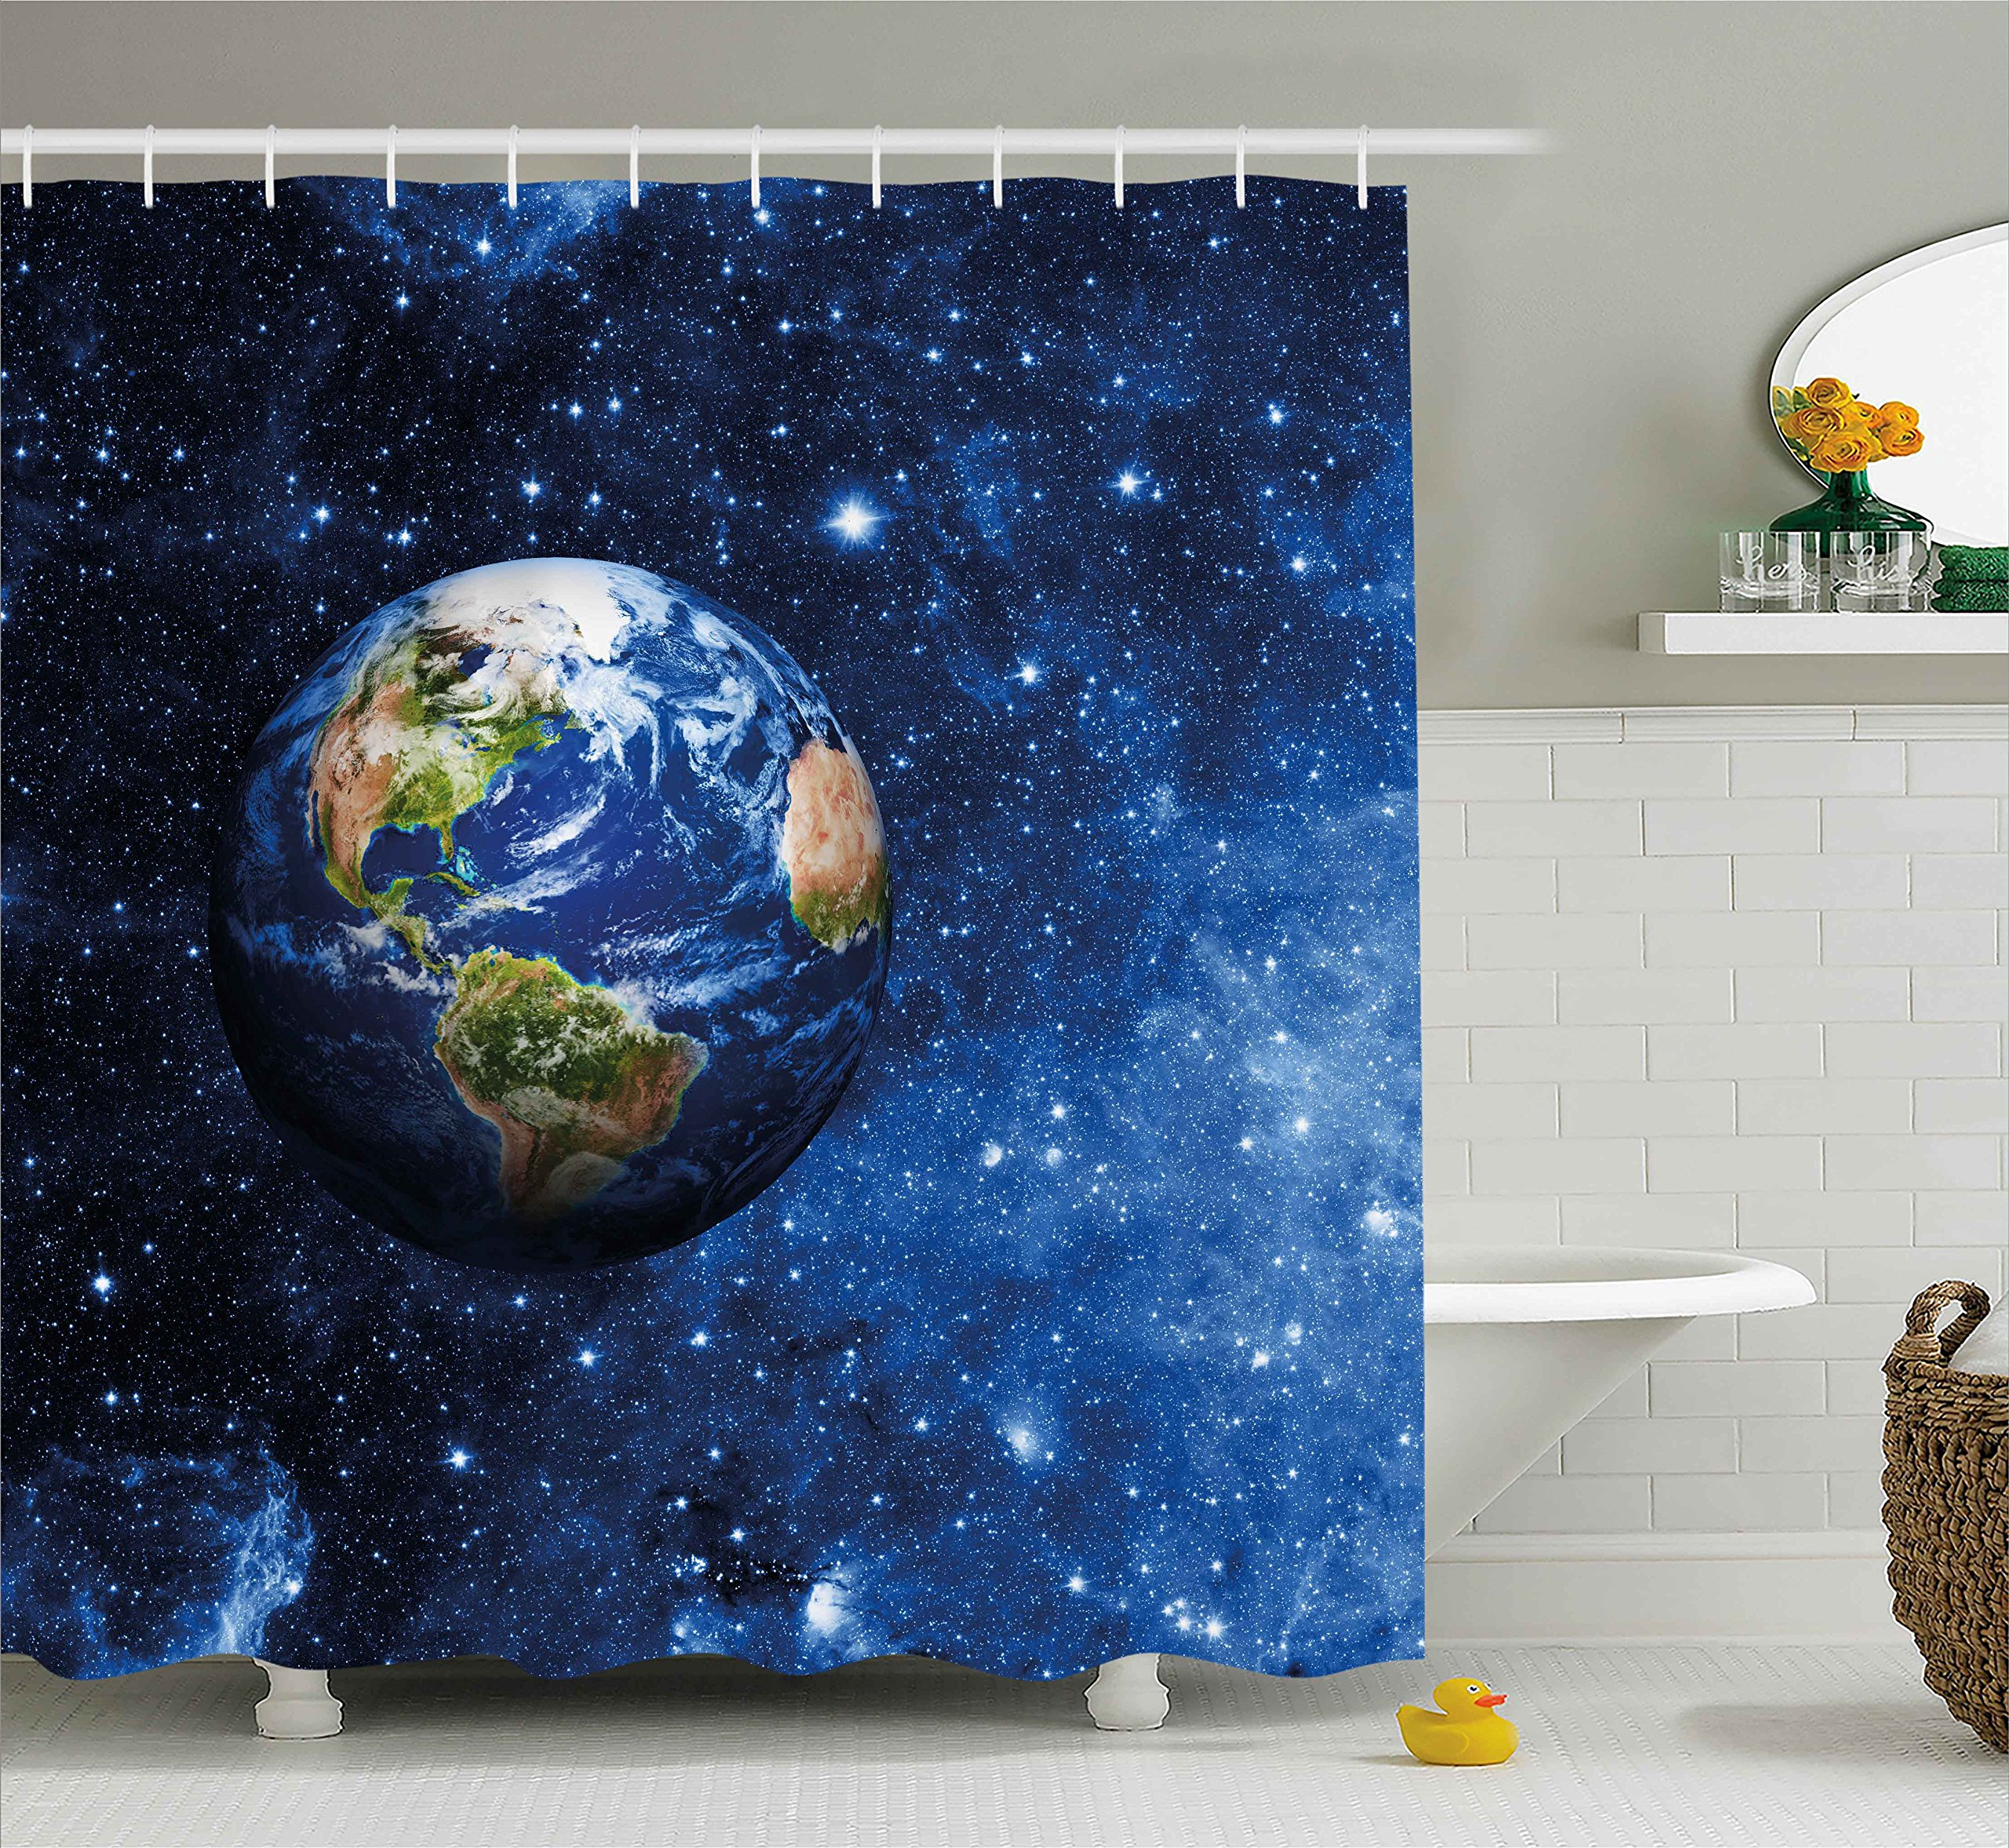 Ambesonne Space Shower Curtain, Outer View of Planet Earth in Solar System with Stars Life on Globe Themed Image, Fabric Bathroom Decor Set with Hooks, 84 Inches Extra Long, Blue Green